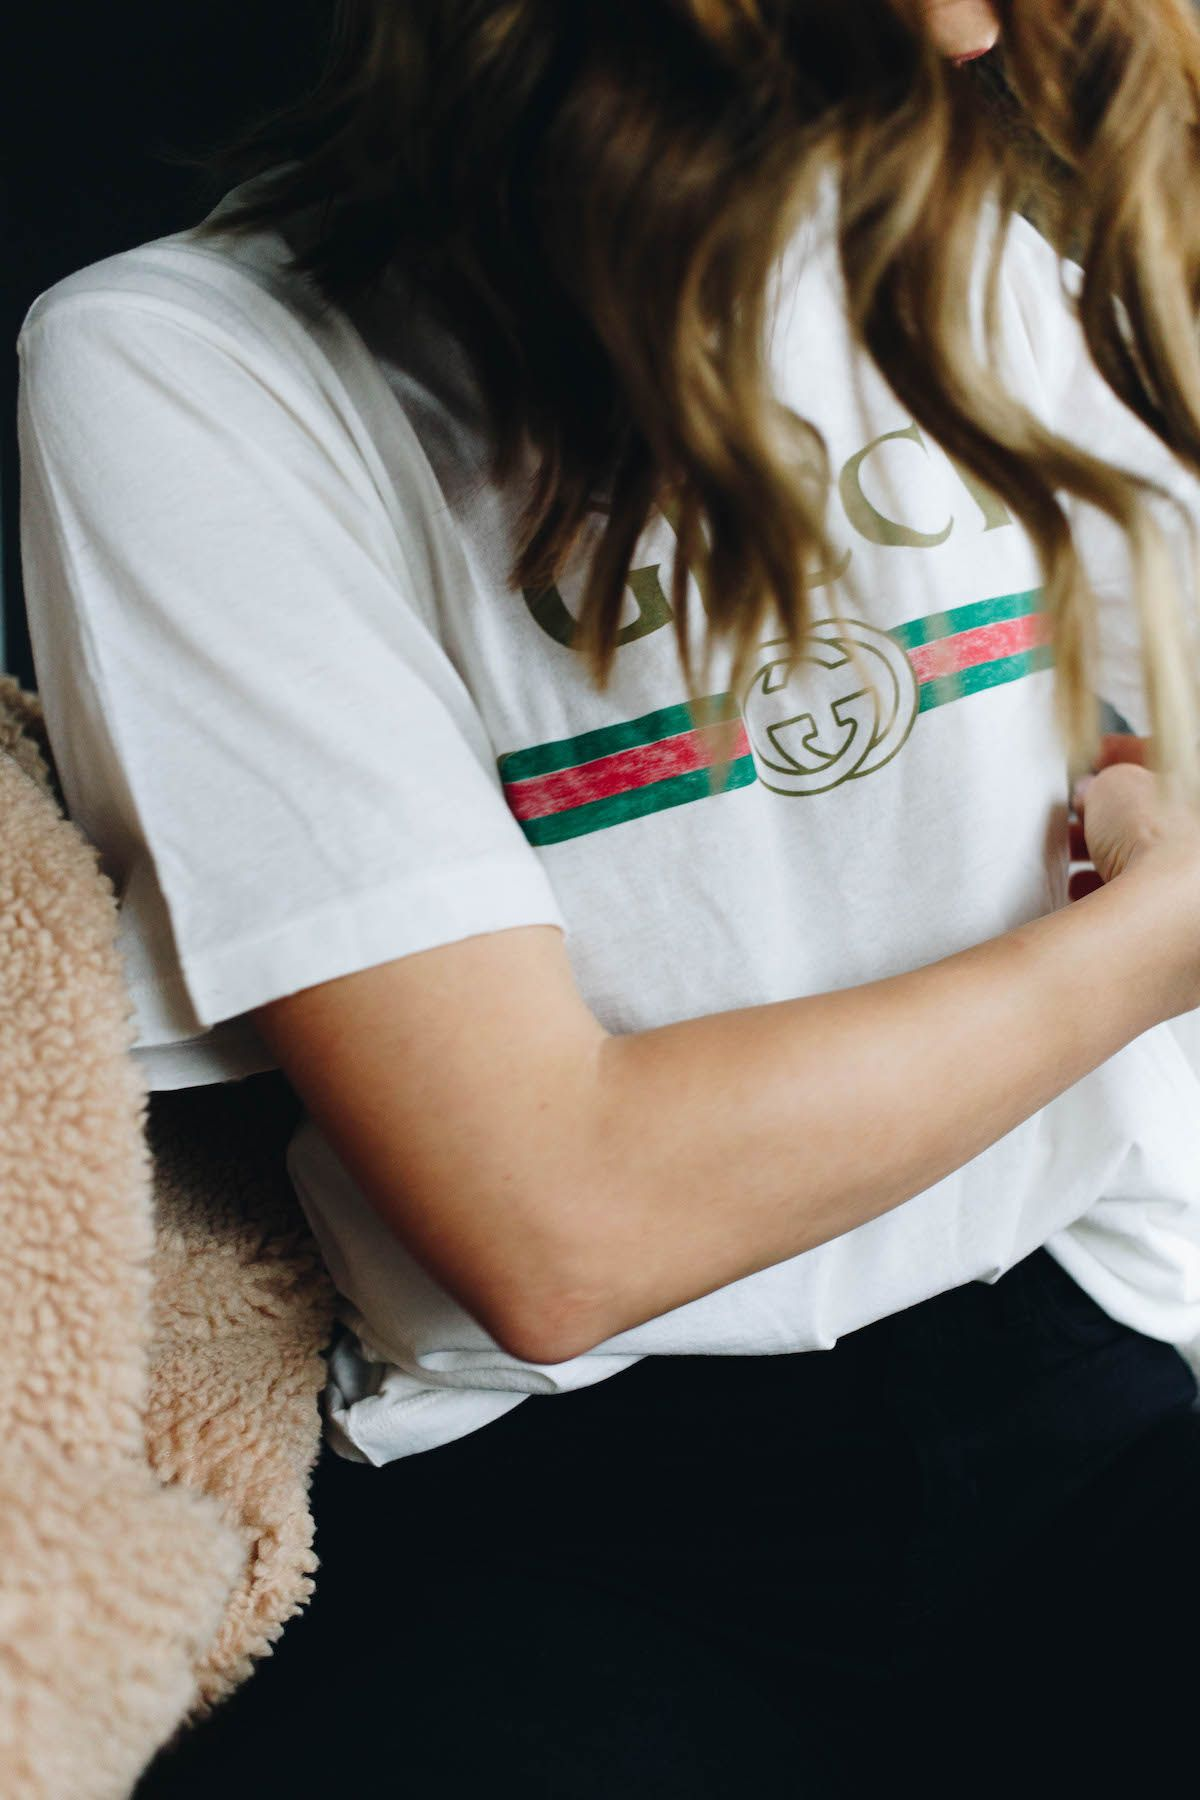 e0eec77a41c3 Pin by Melange Pursuit on street stylin'   Gucci tee, Gucci shirt ...